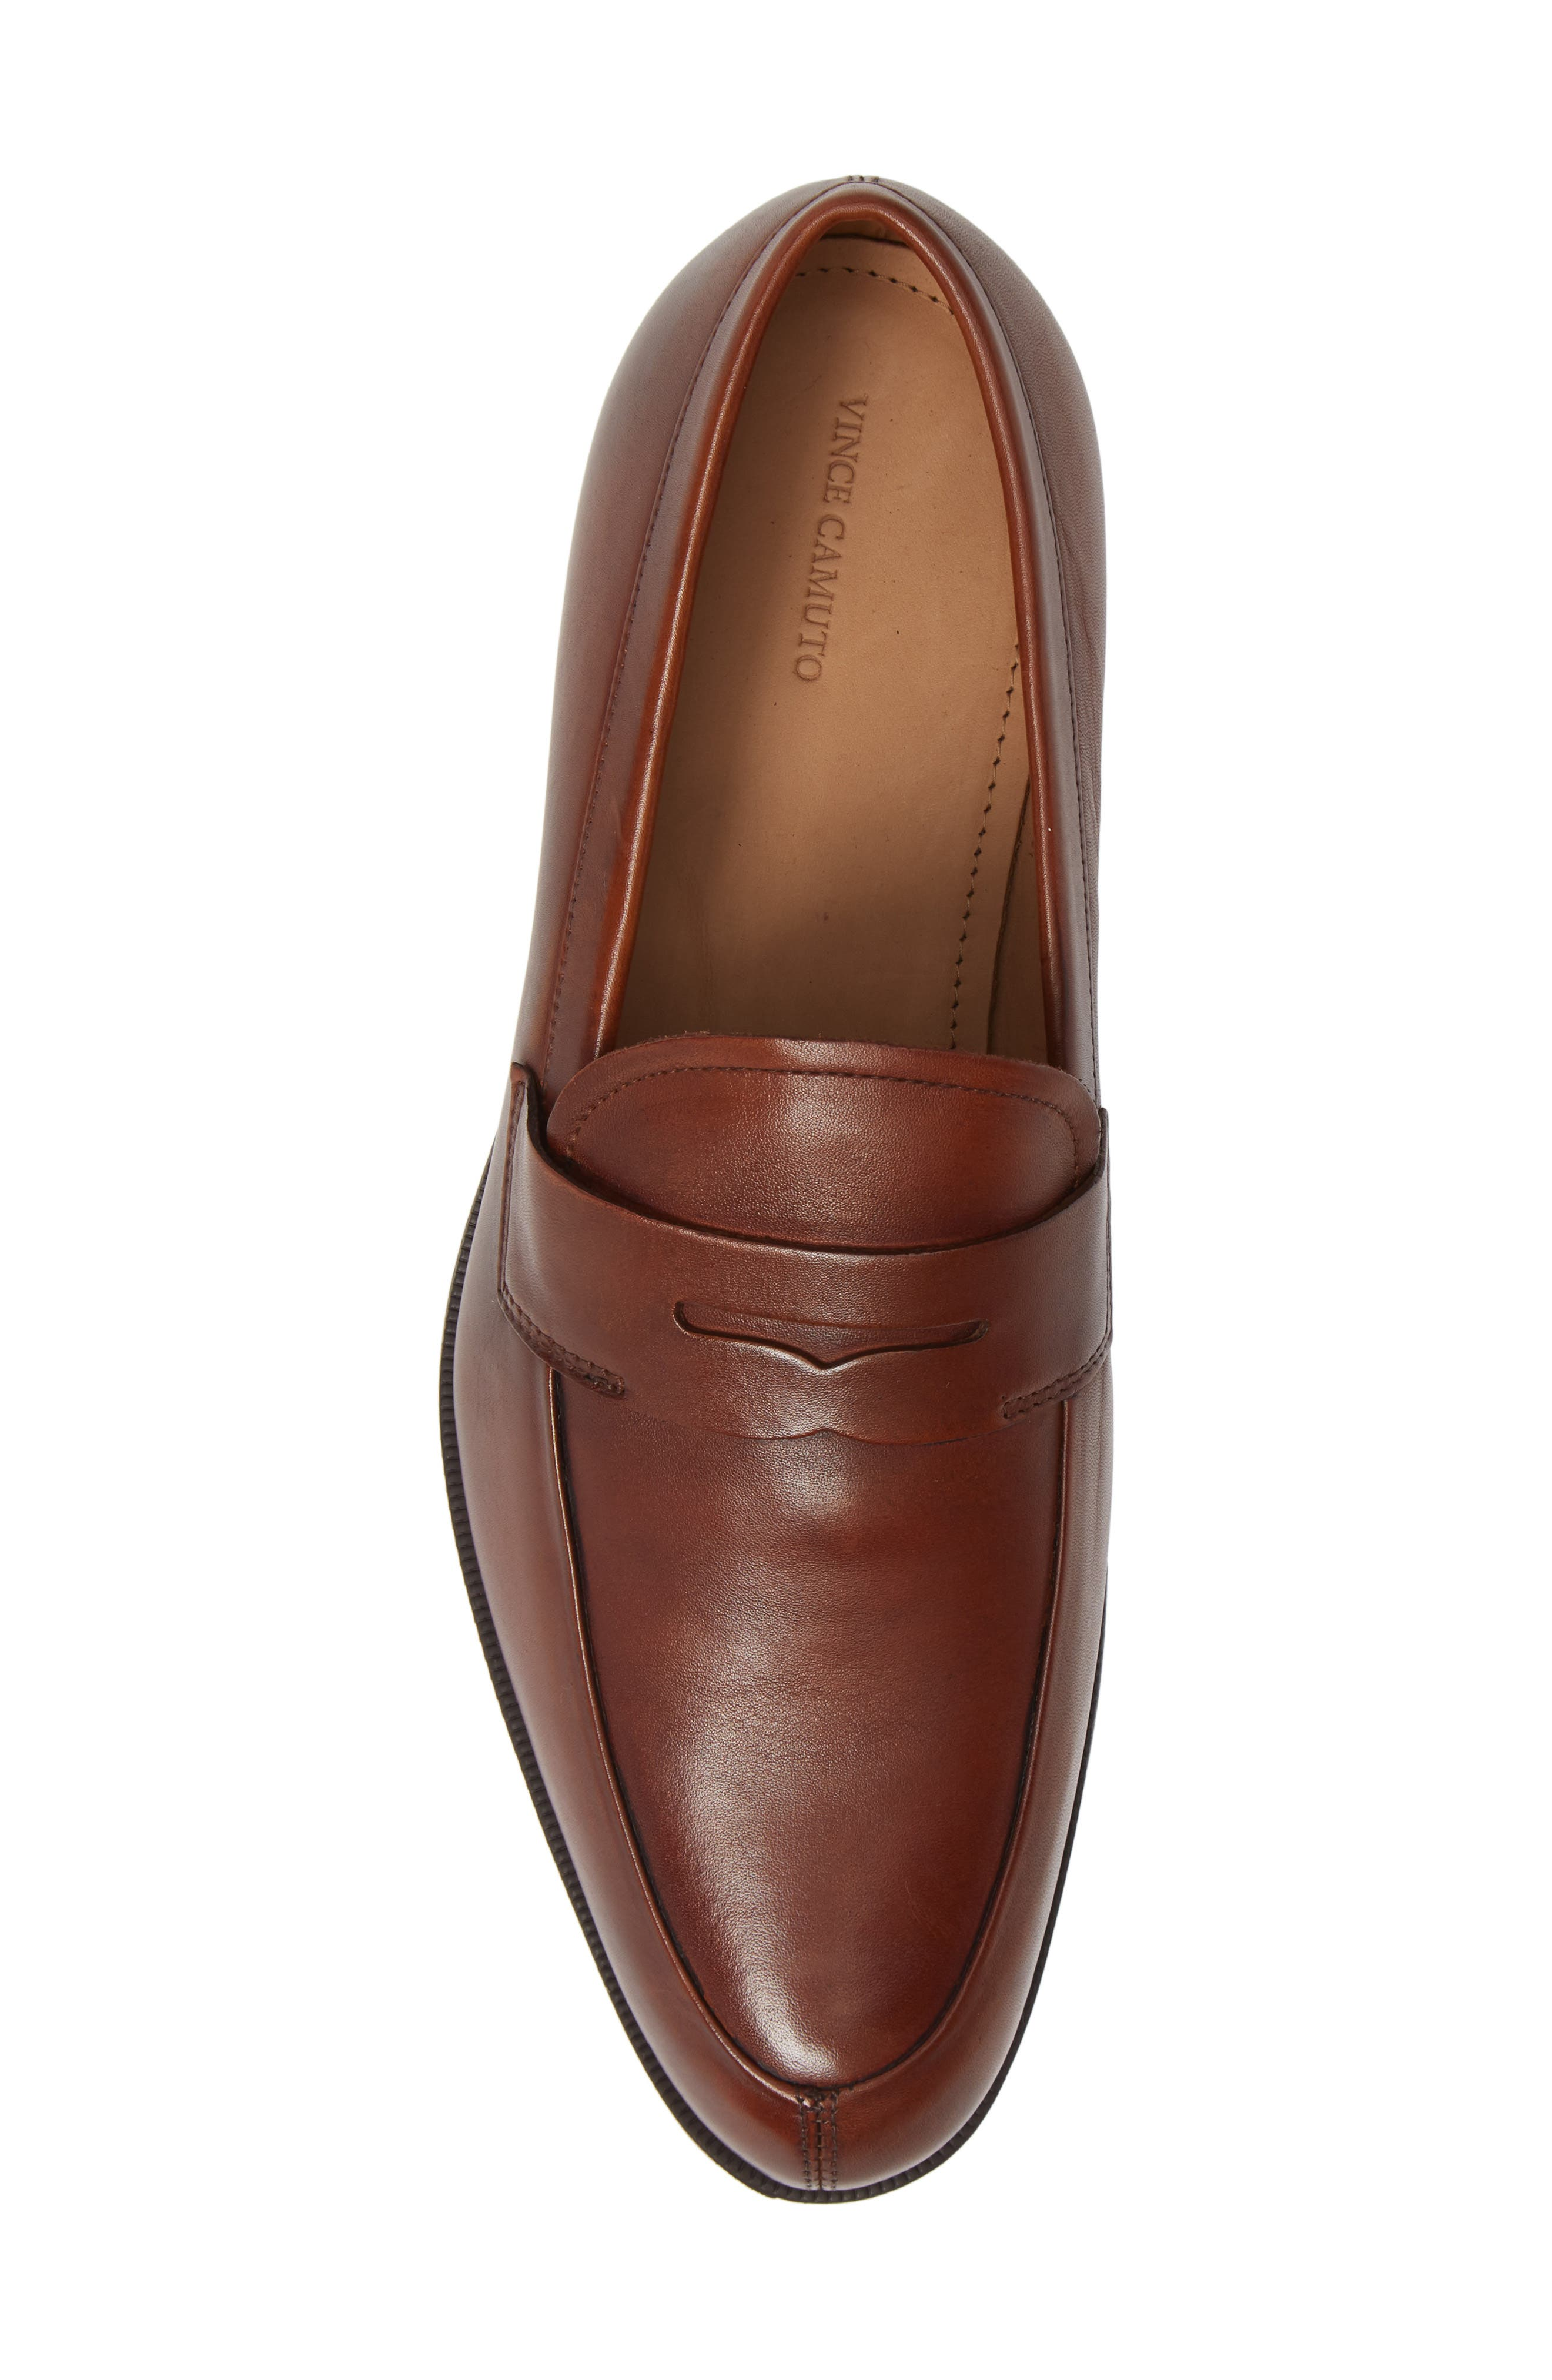 Iggi Penny Loafer,                             Alternate thumbnail 5, color,                             COGNAC LEATHER